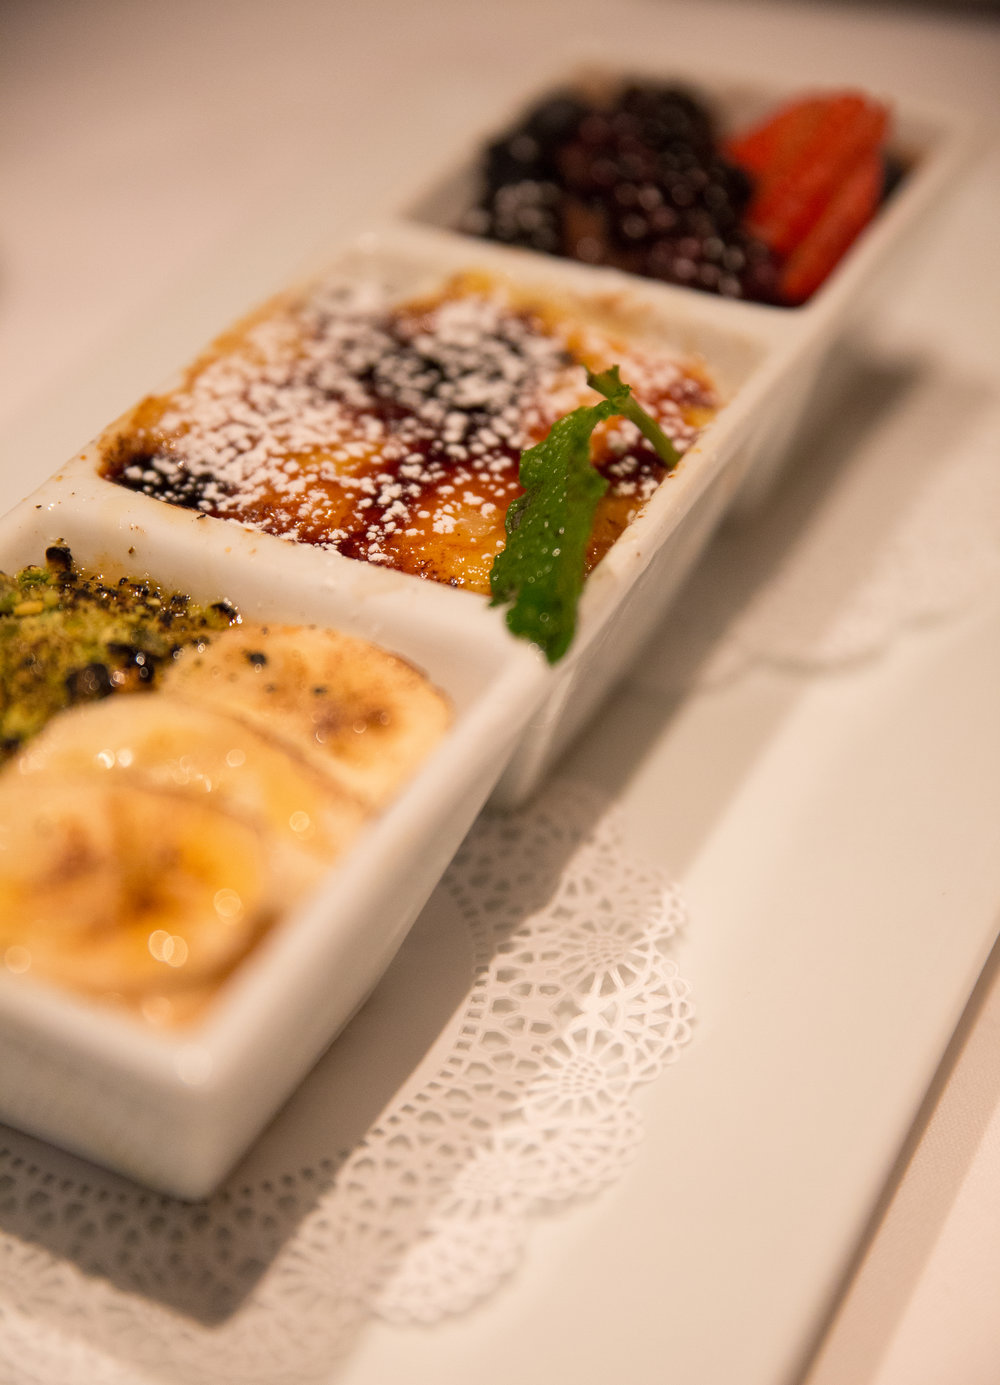 The triple Creme Brulee brings together the classic creme brulee, another one that is mango flavored and topped with banana and ground pistachio and a third that's blended with chocolate and is topped with blueberries, blackberries and strawberries. (Photo / Craig D'Andrea).